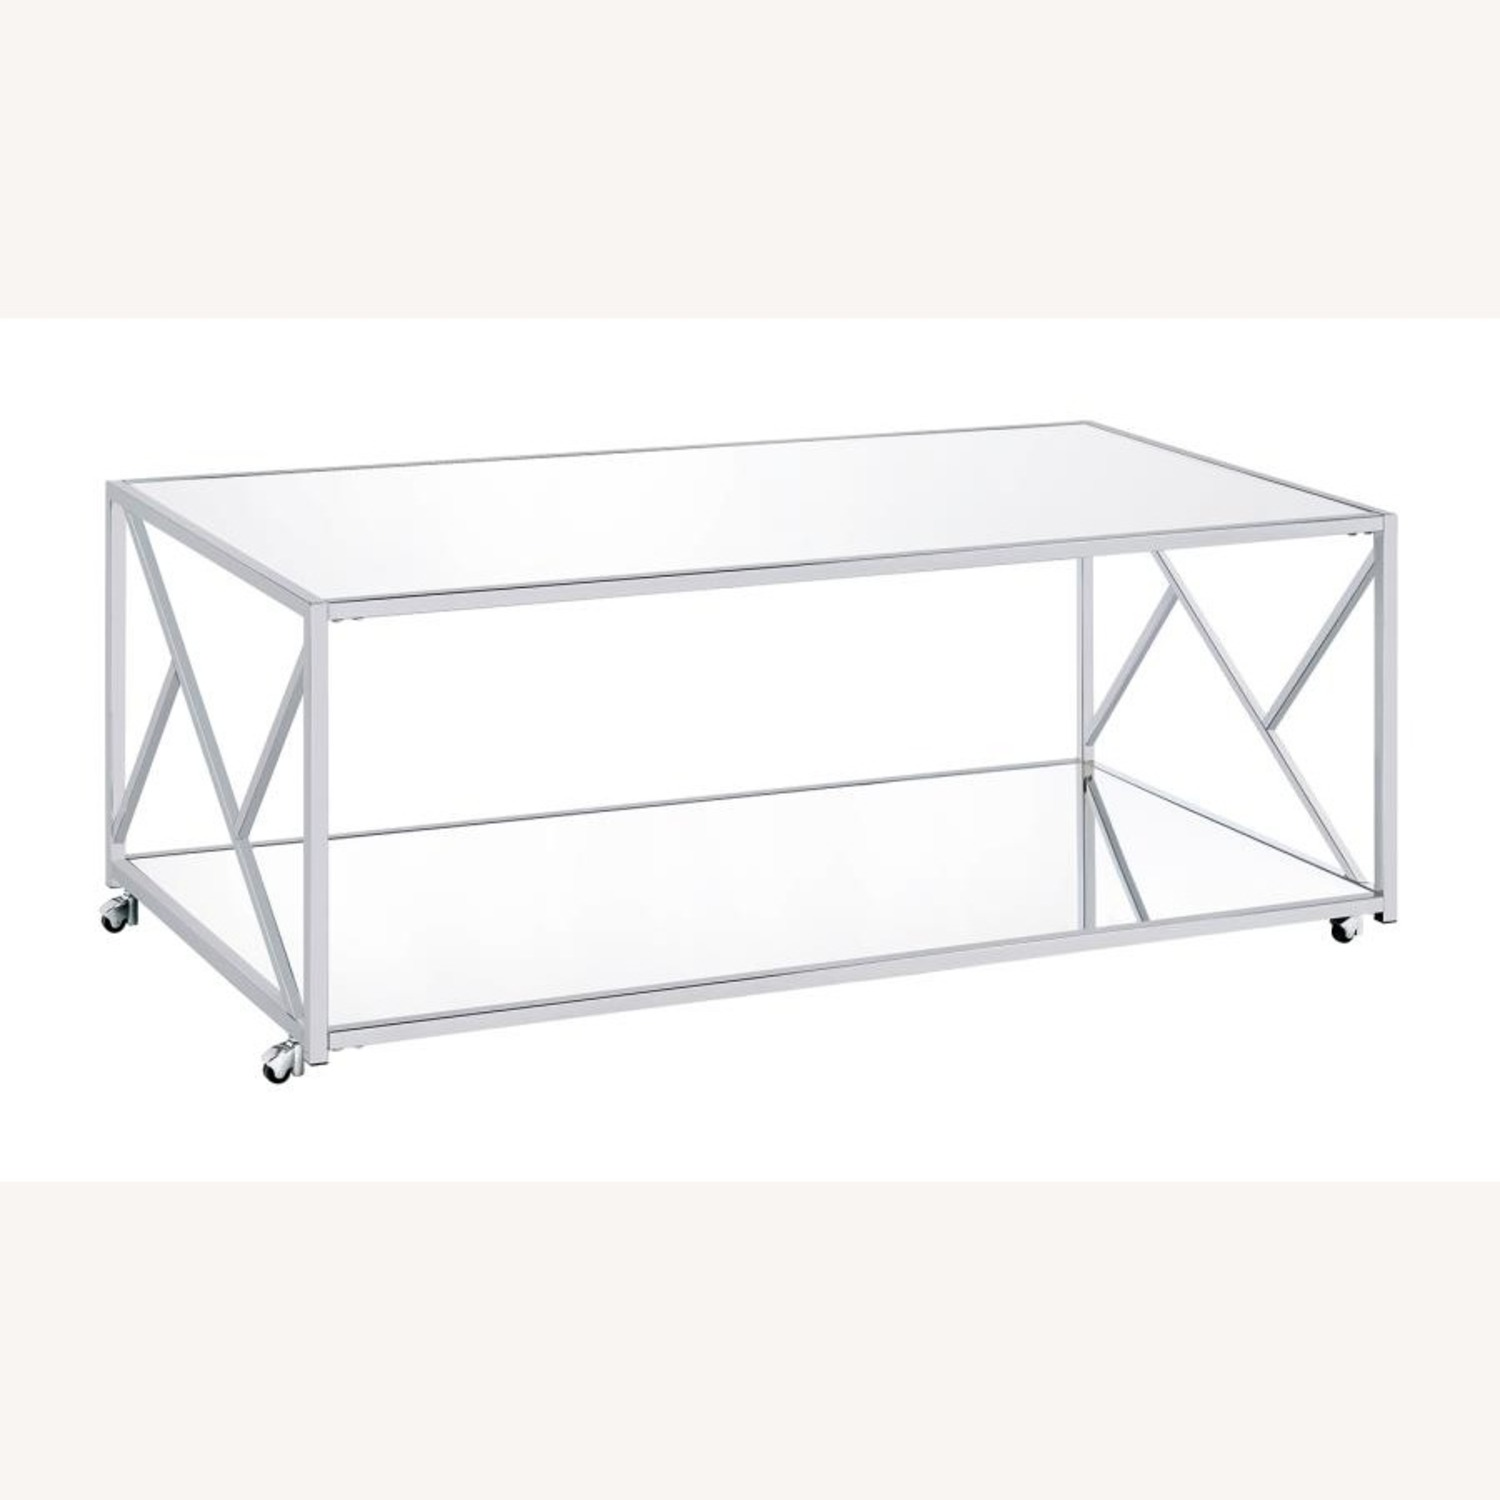 3Piece Occasional Table Set In Clear Mirror Finish - image-0